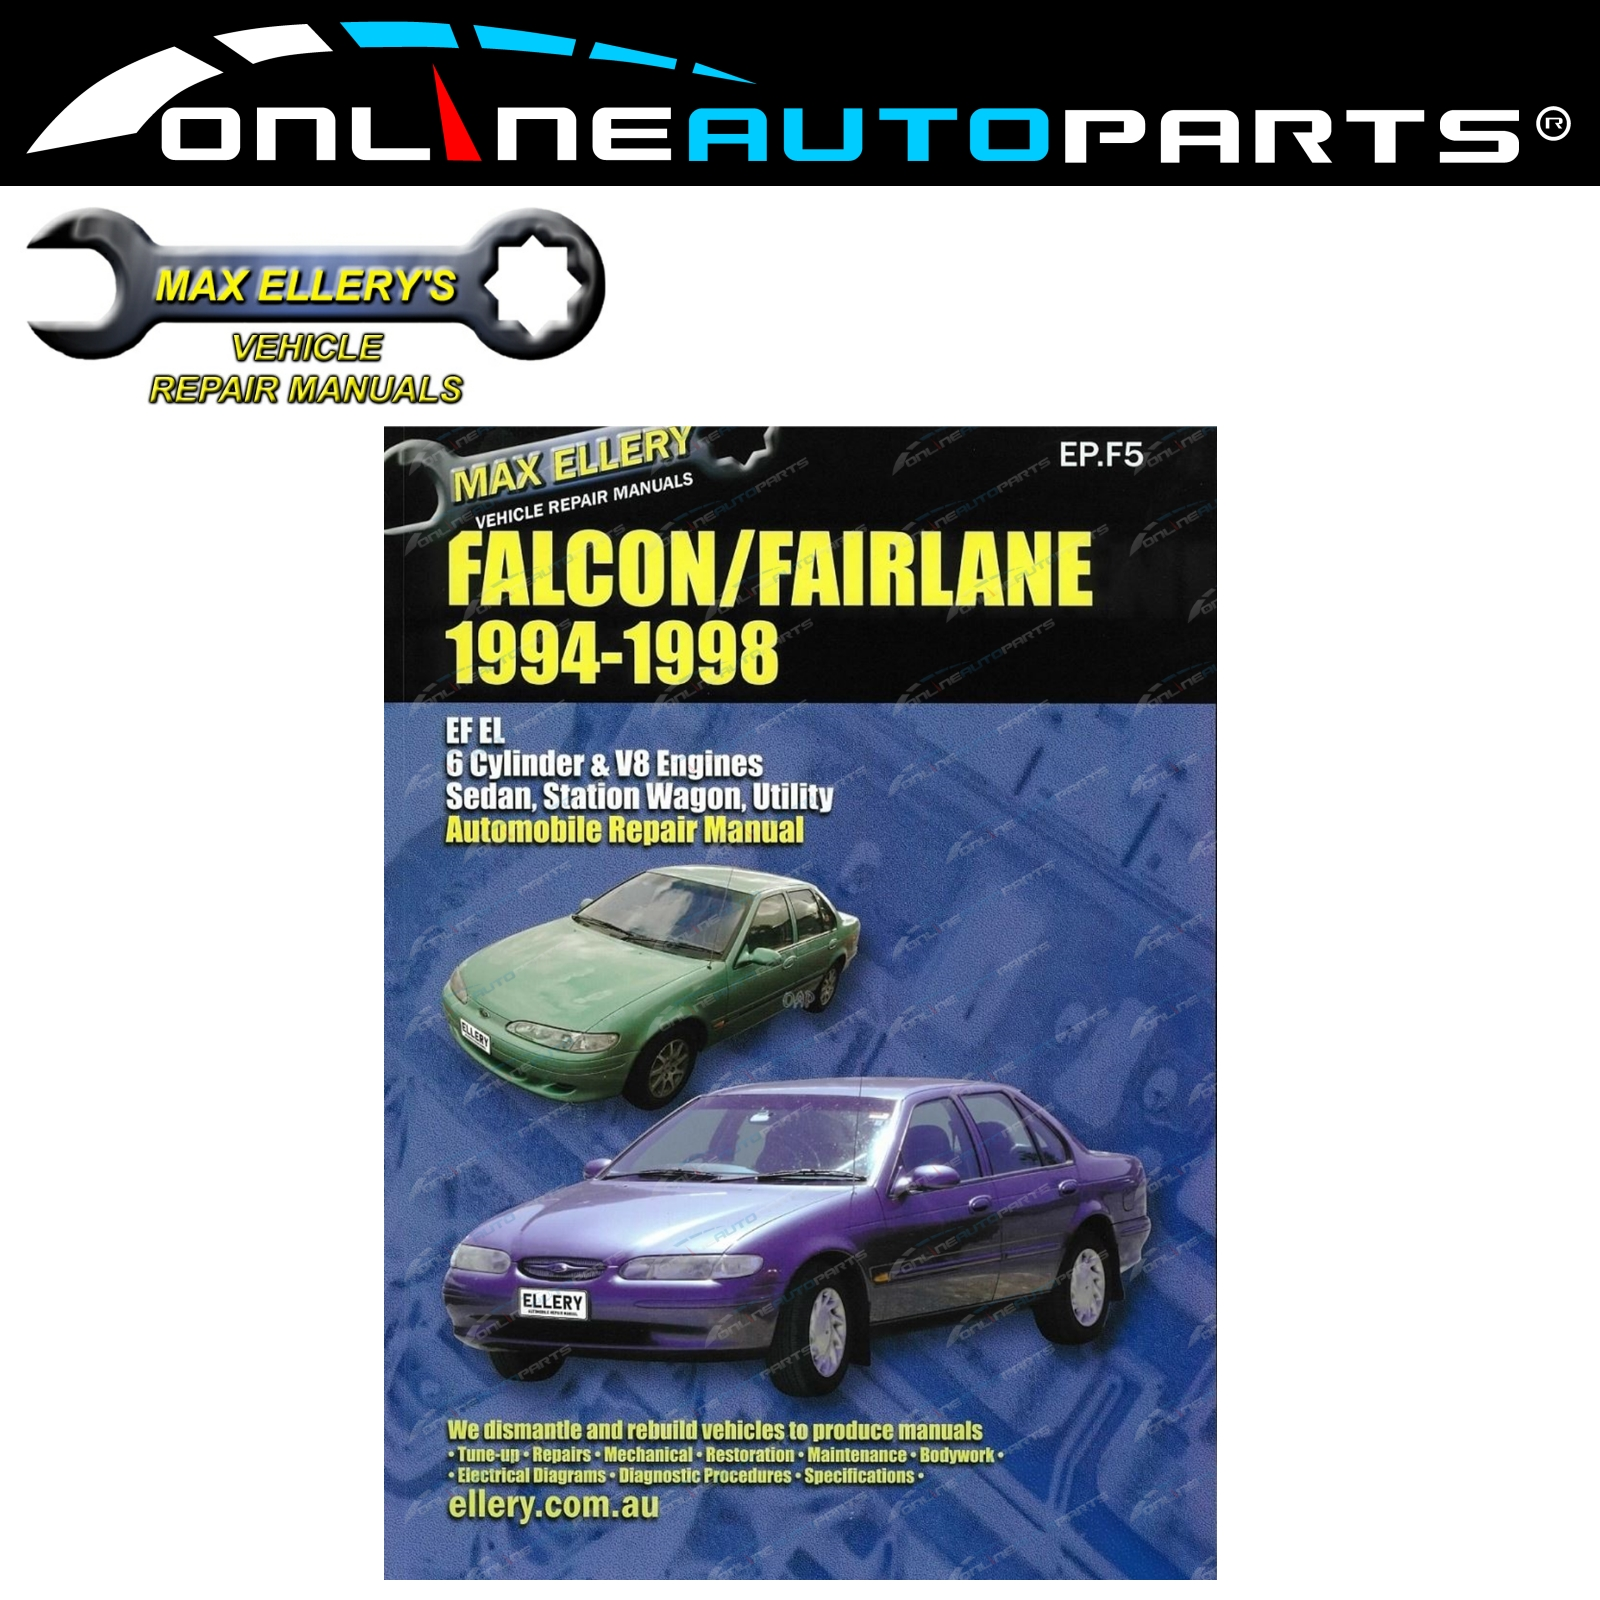 Workshop Manual Ford Falcon Ef El Fairlane Nf Nl 94 98 Ltd Fairmont Wiring Diagram Repair Book